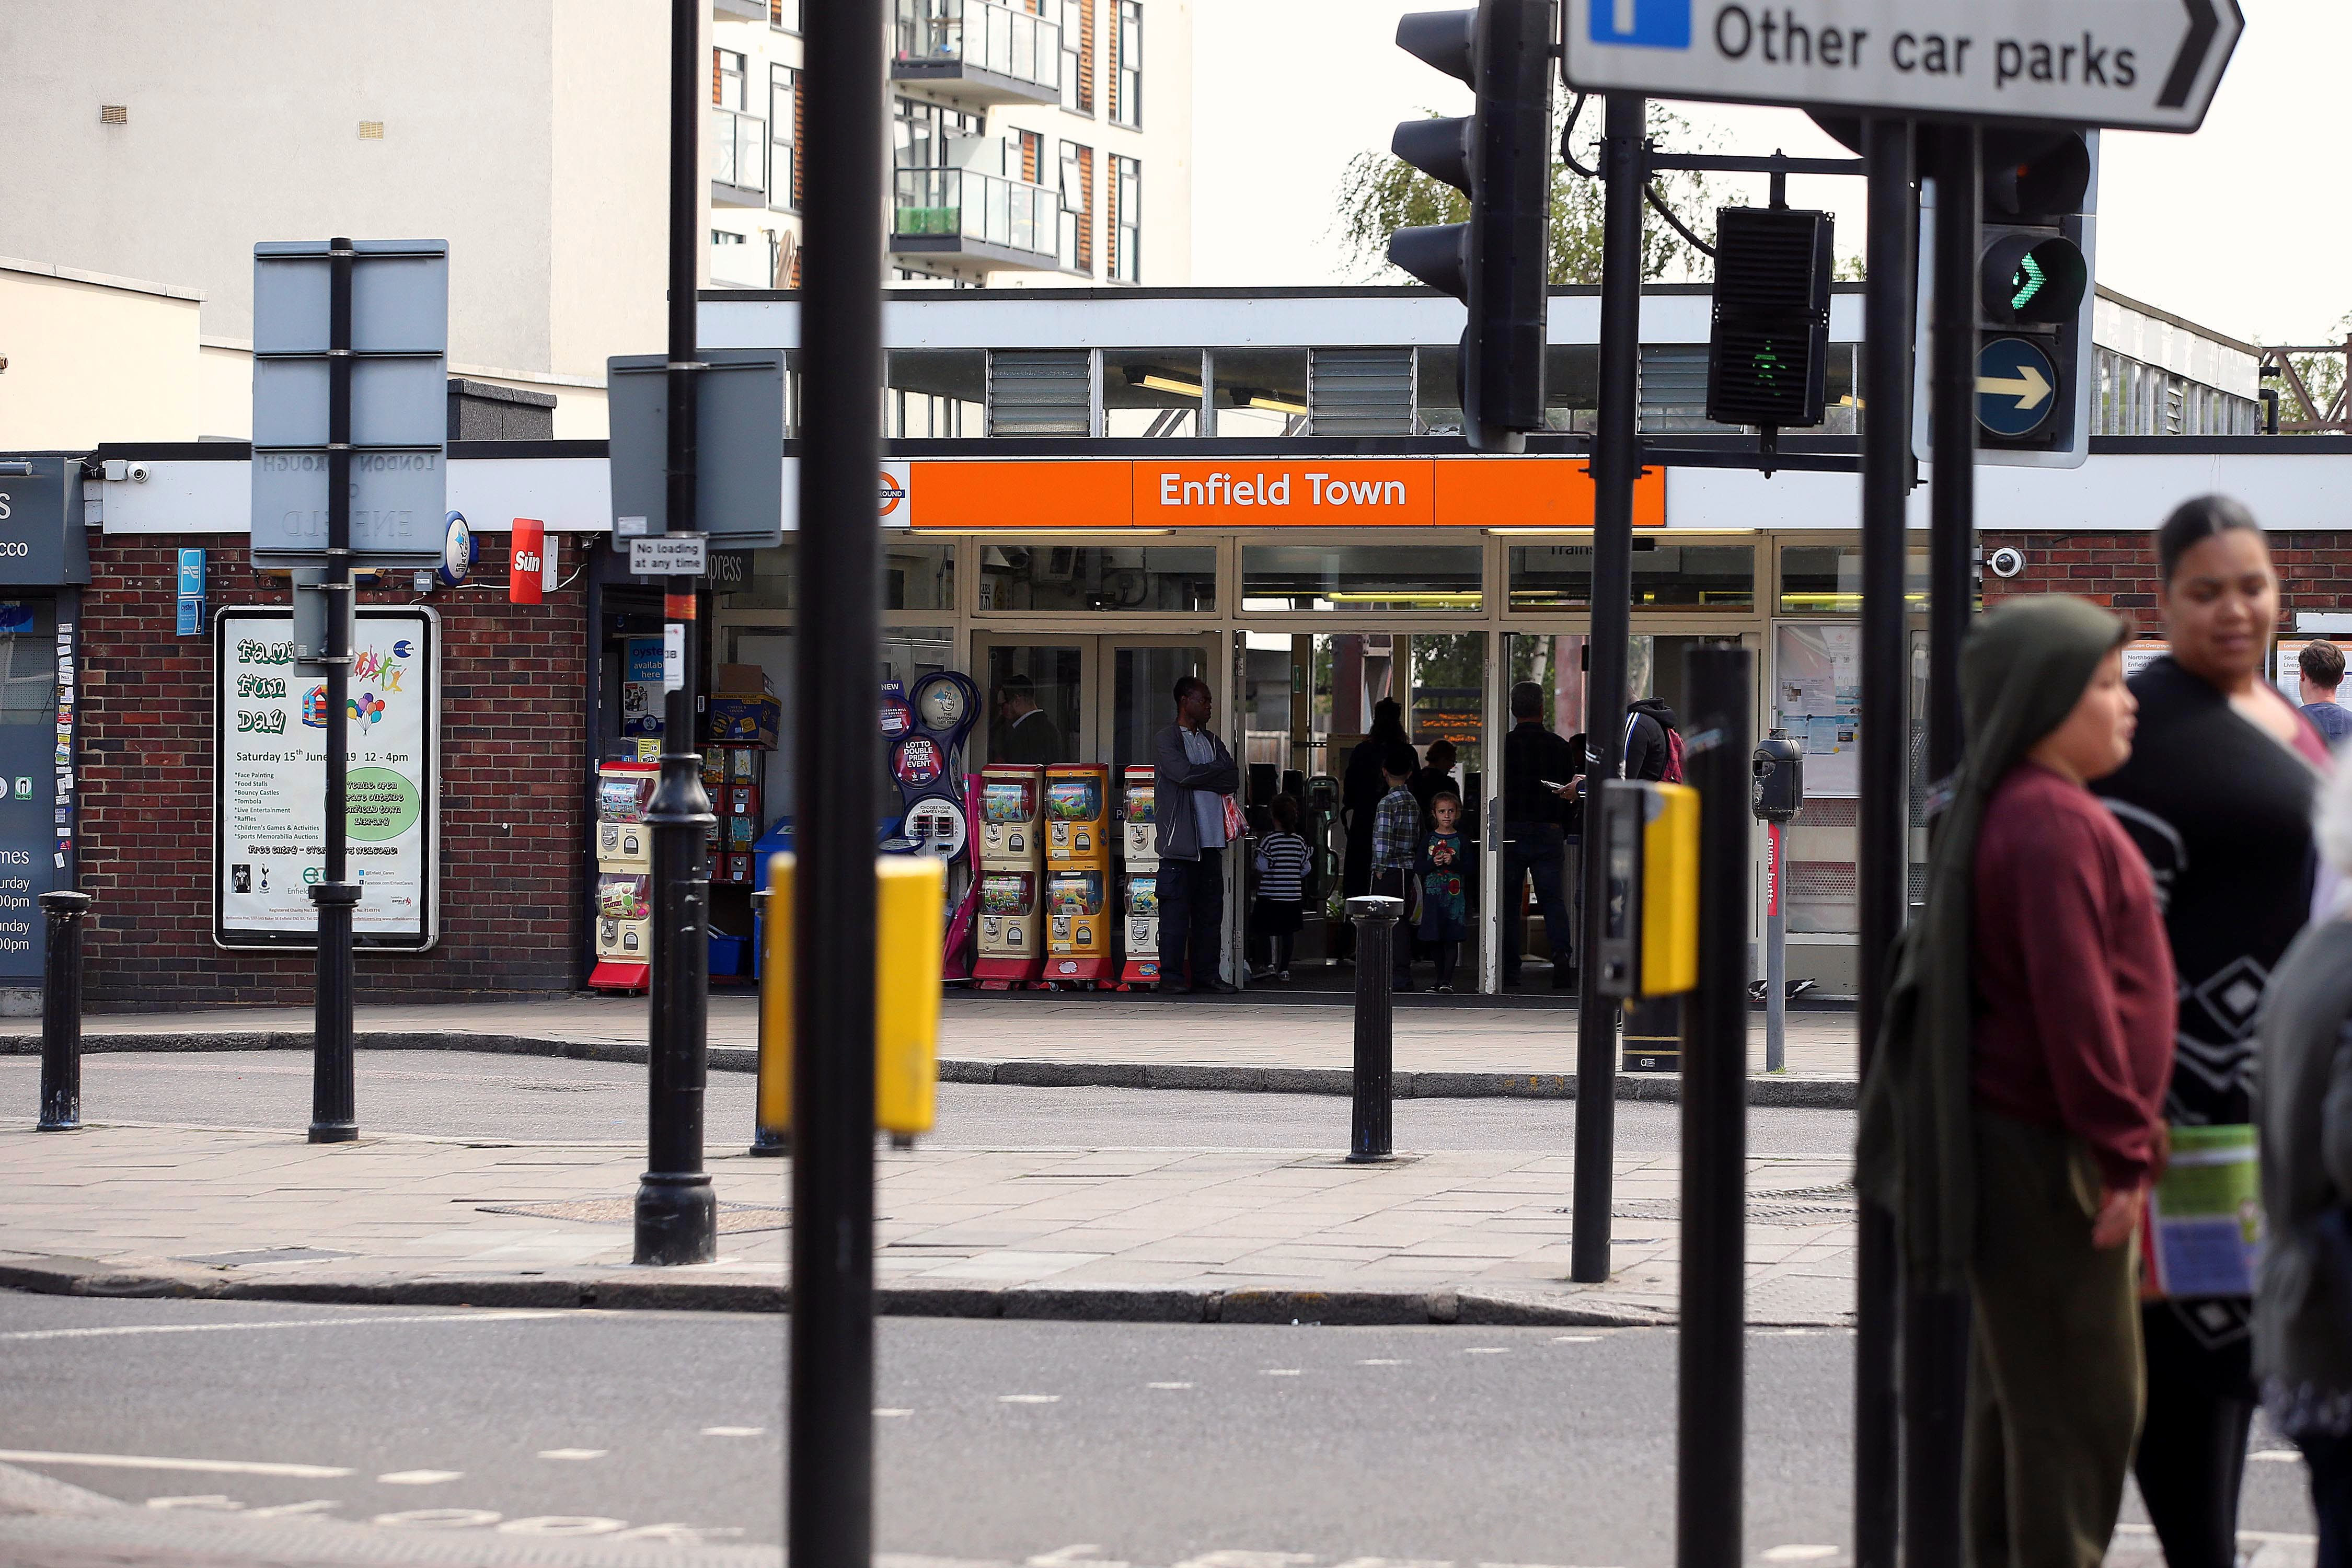 A view into Enfield Town Station